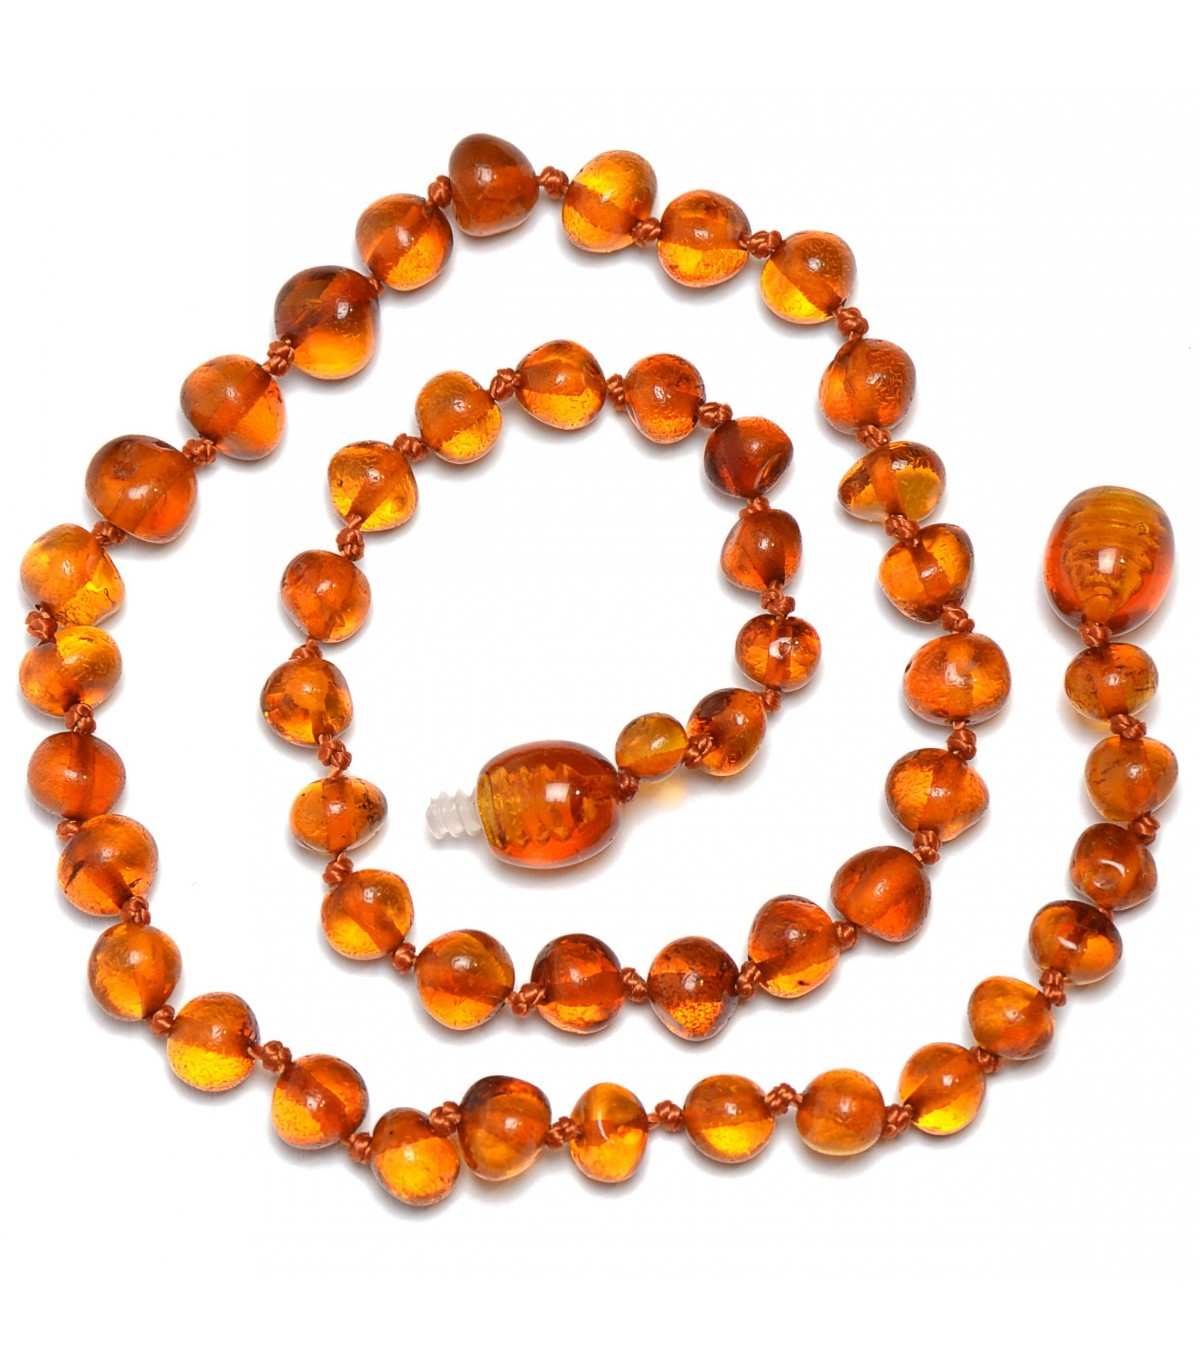 10 pcs of Baltic Amber Baby Necklaces Made With Raw Multicolor Amber and Turquoise Beads Amber Wholesale LOT